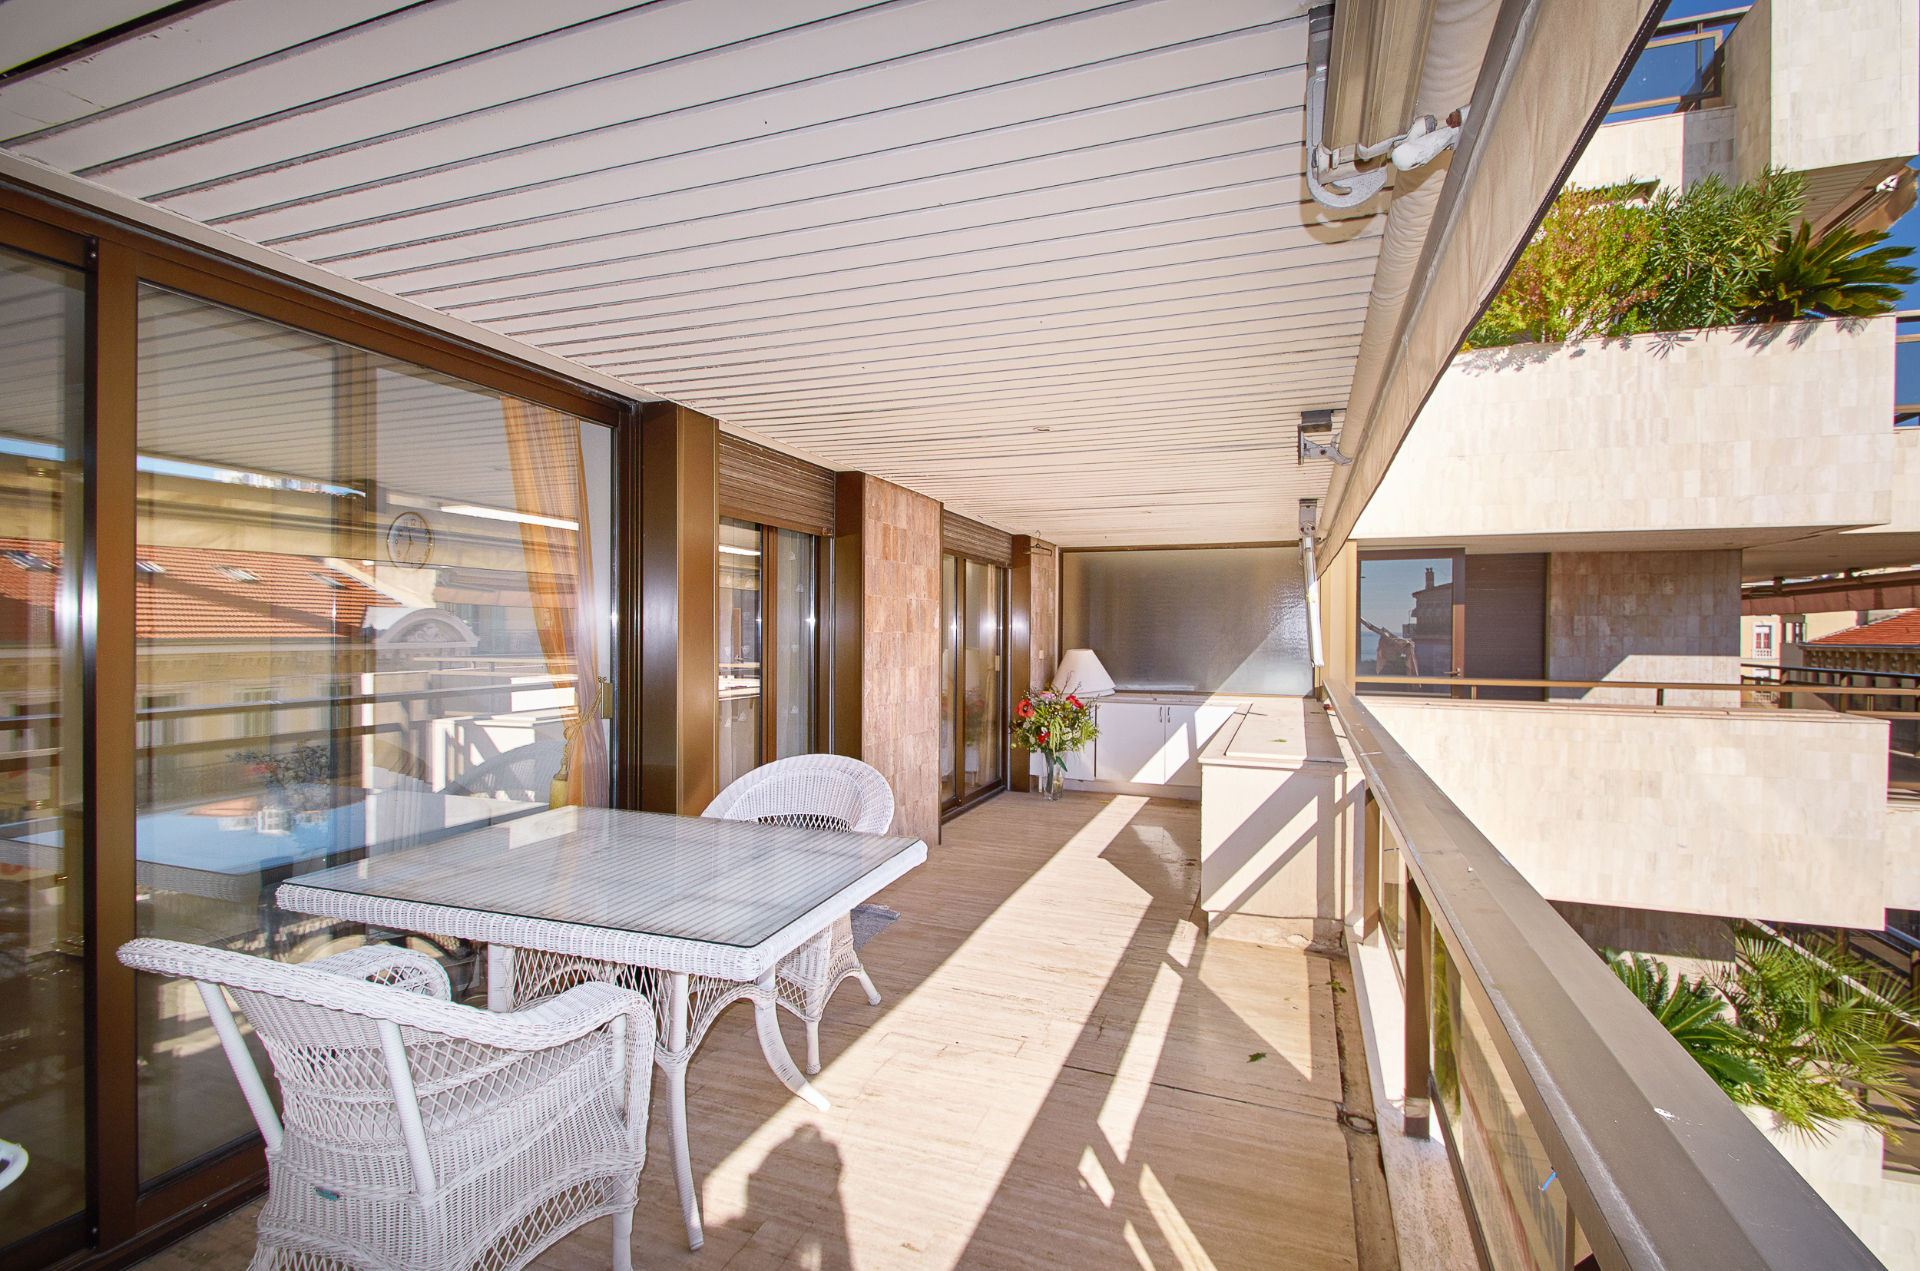 Apartment for Sale at 1 bedroomed apartment - Le Gray d'Albion - Cannes Cannes, Provence-Alpes-Cote D'Azur, 06400 France